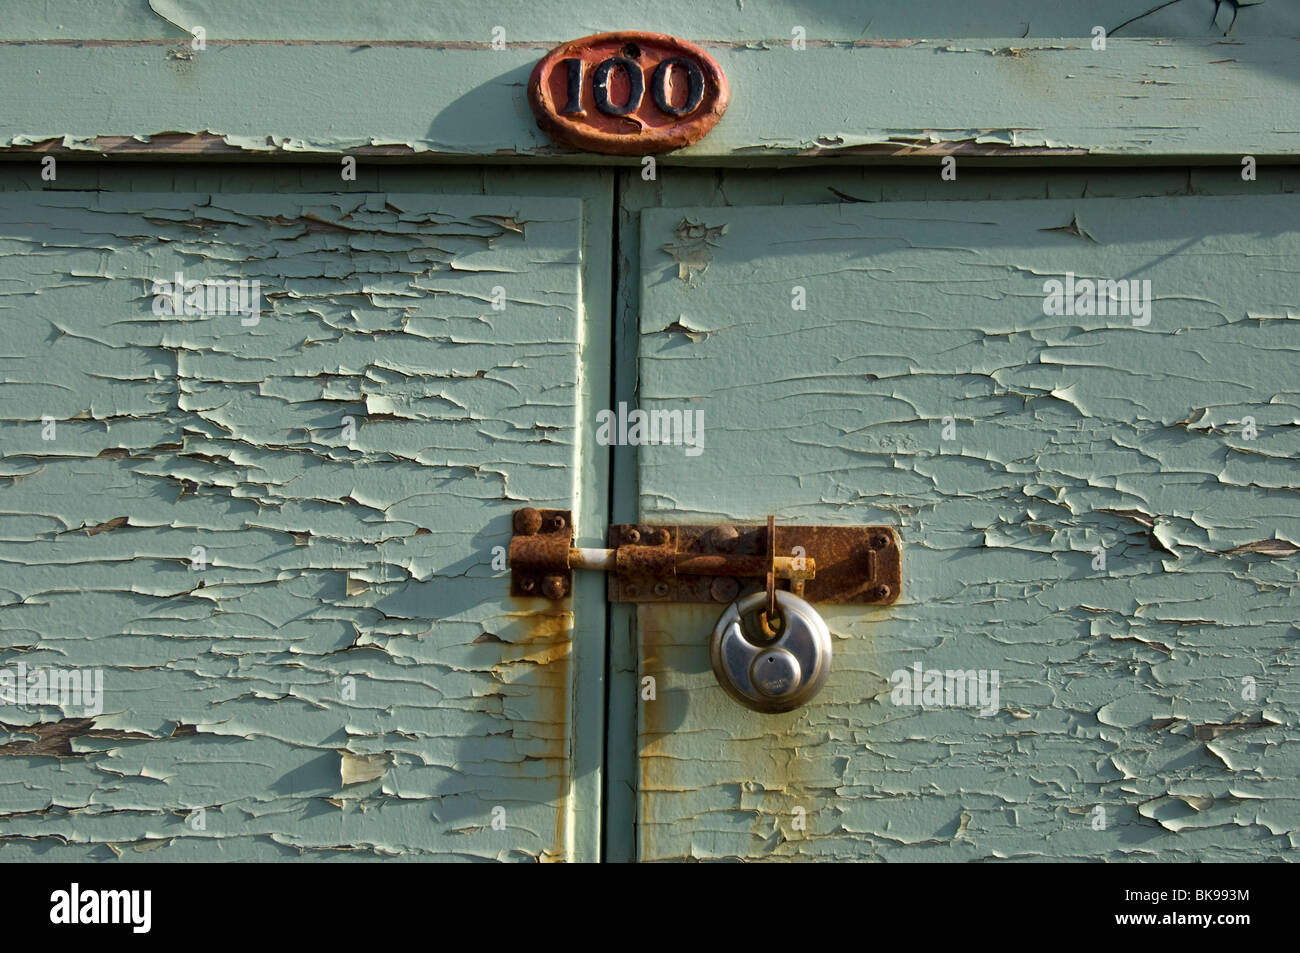 A beach hut, number 100, on Hove Esplanade, with its rusty bolt and padlock. - Stock Image